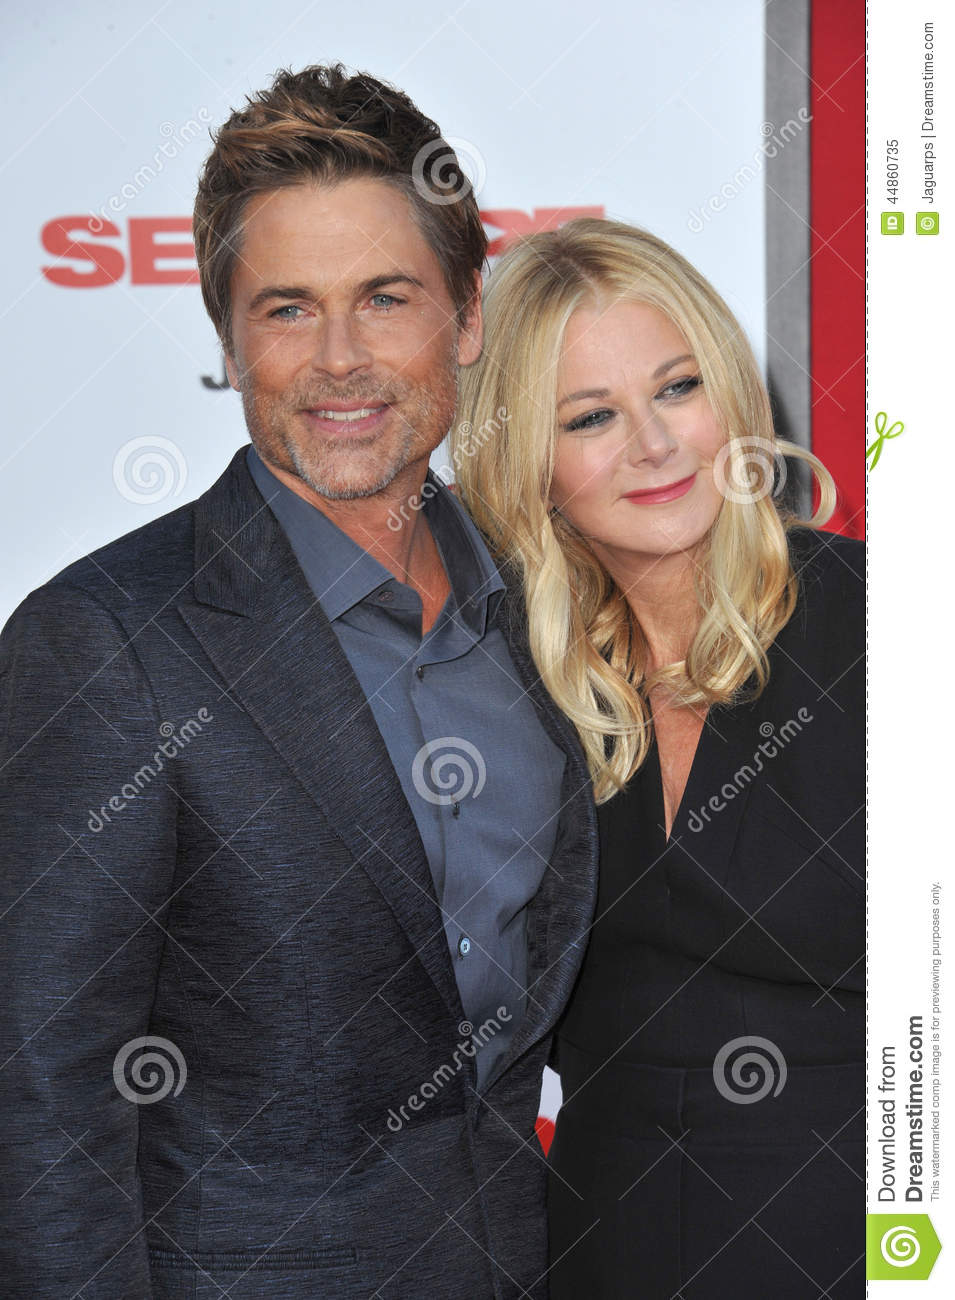 LOS ANGELES, CA - JULY 10, 2014: Rob Lowe & wife Sheryl Berkoff at the  world premiere of his movie Sex Tape at the Regency Village Theatre,  Westwood.